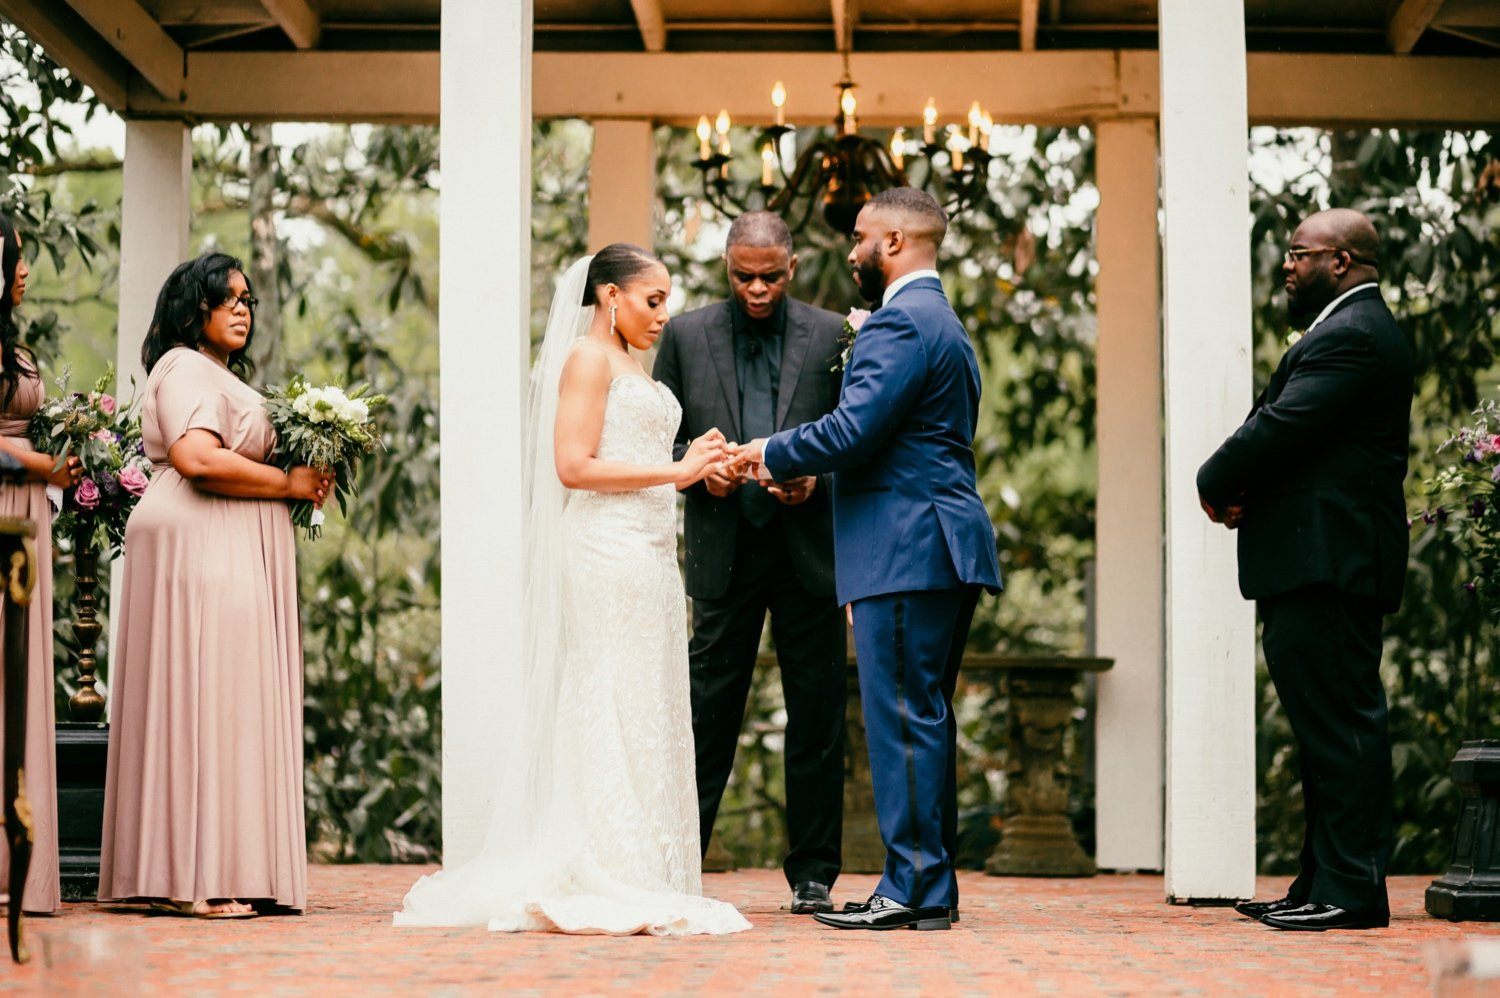 bride places ring on grooms hand during the ceremony